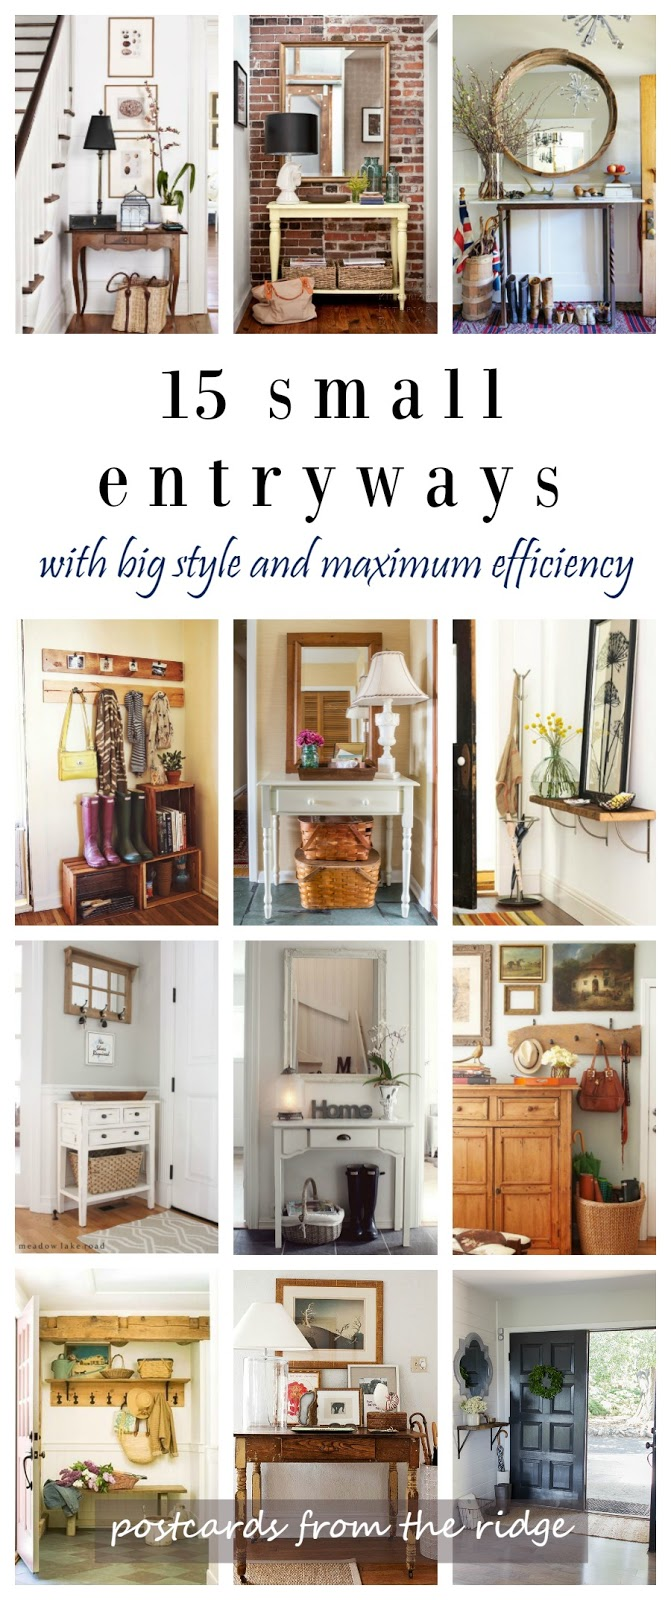 ideas for small entryways